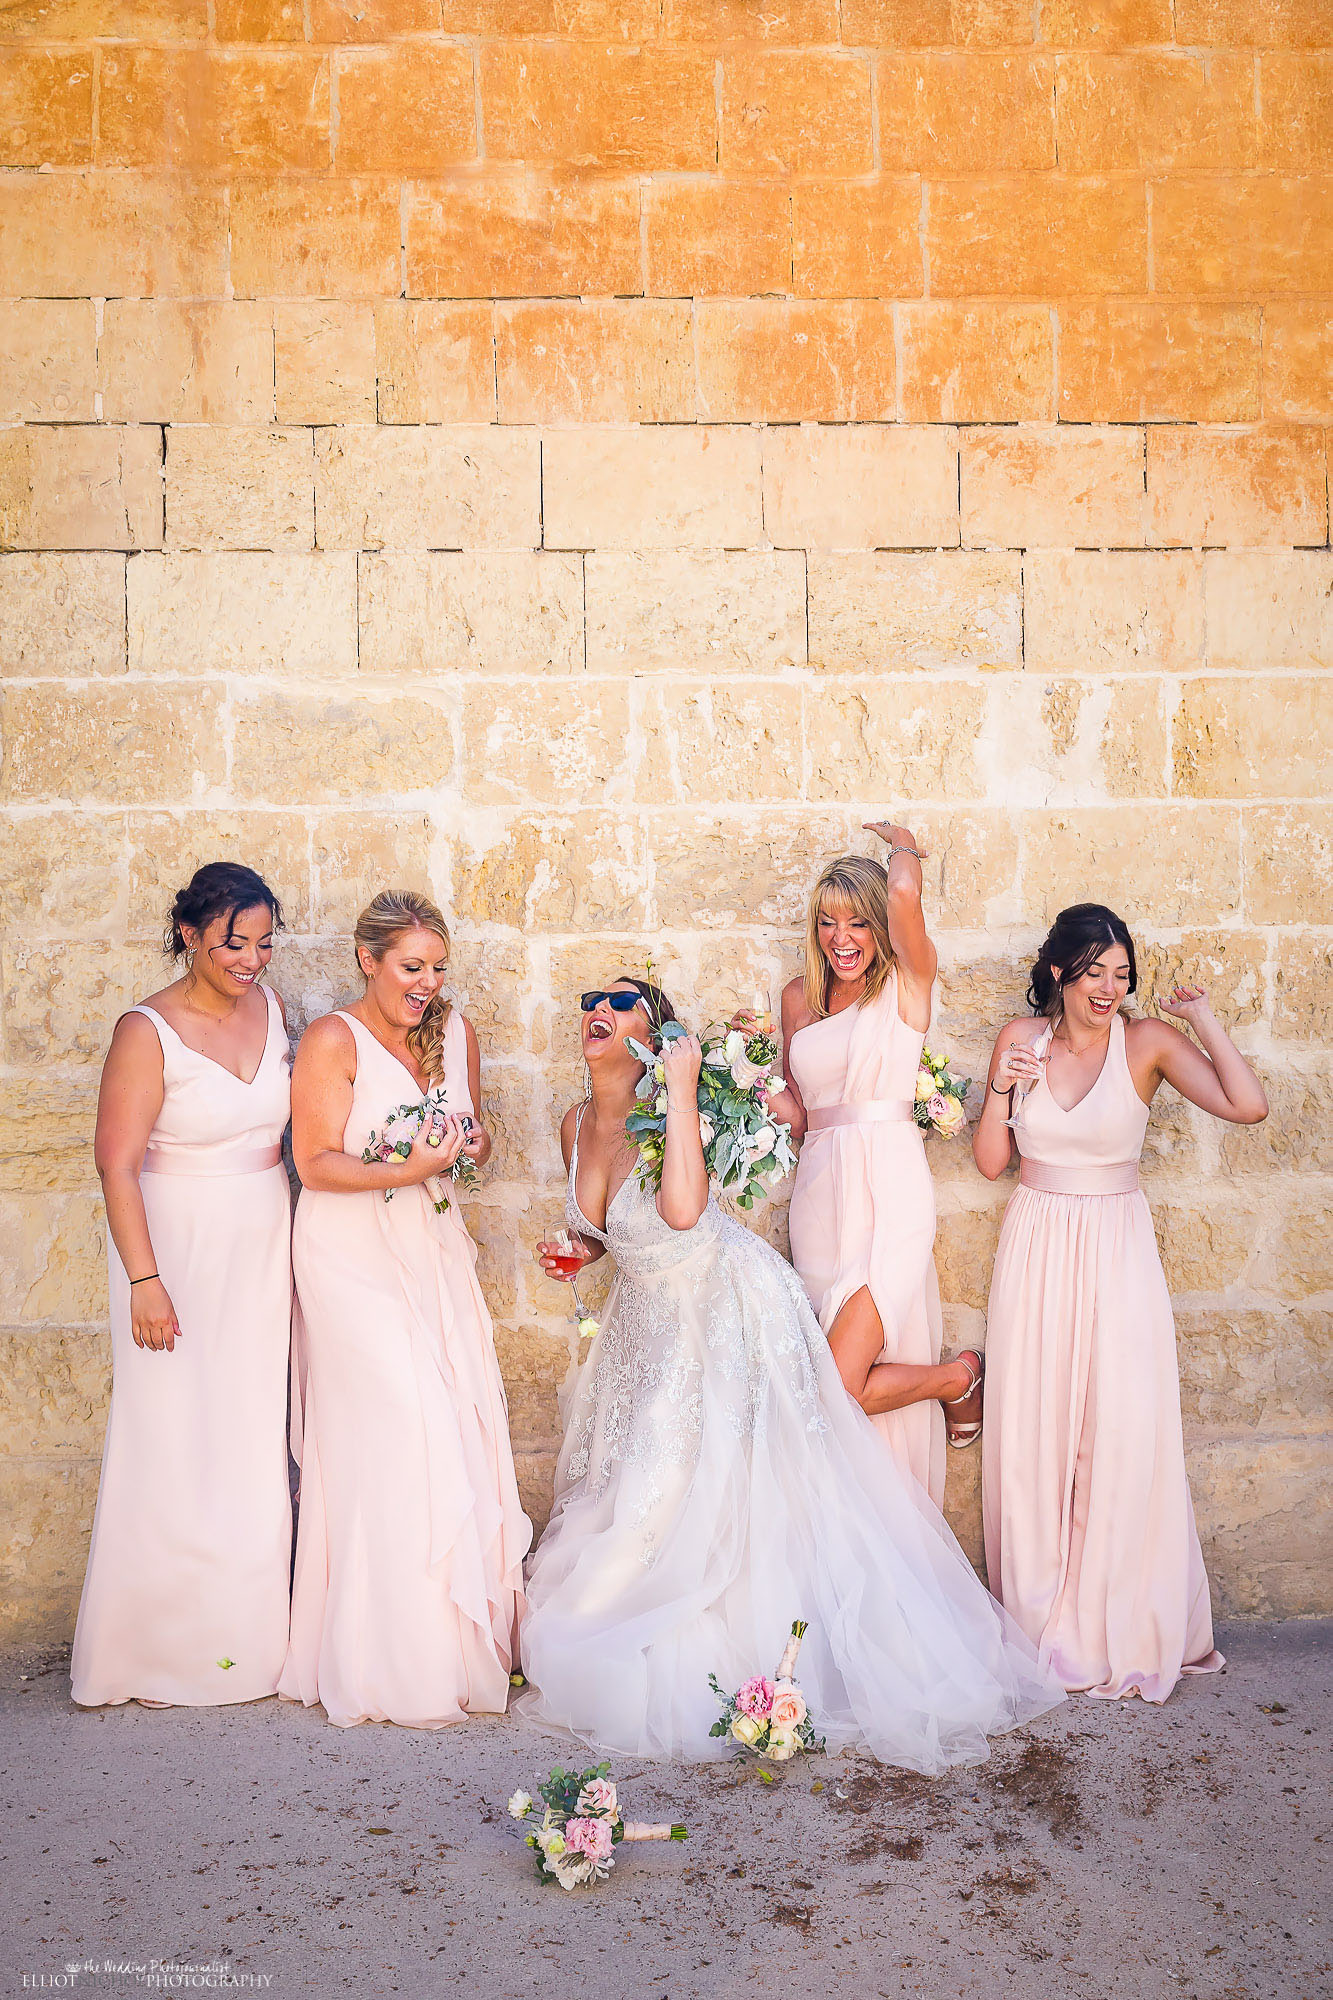 Bride and her Bridesmaids having fun during the wedding group-shots. Wedding photojournalist Elliot Nichol.